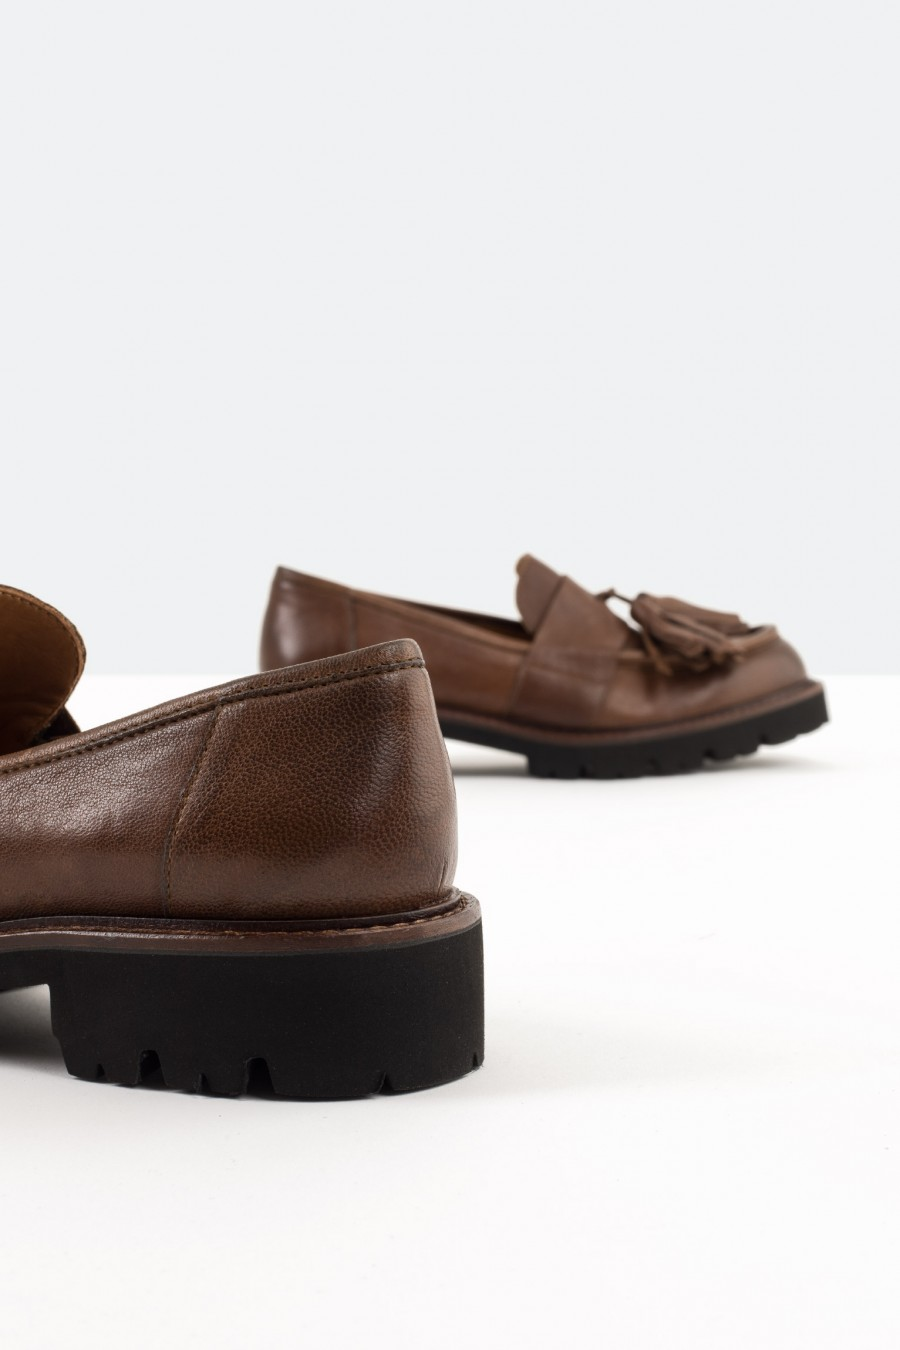 Brown italian leather flats with tassels